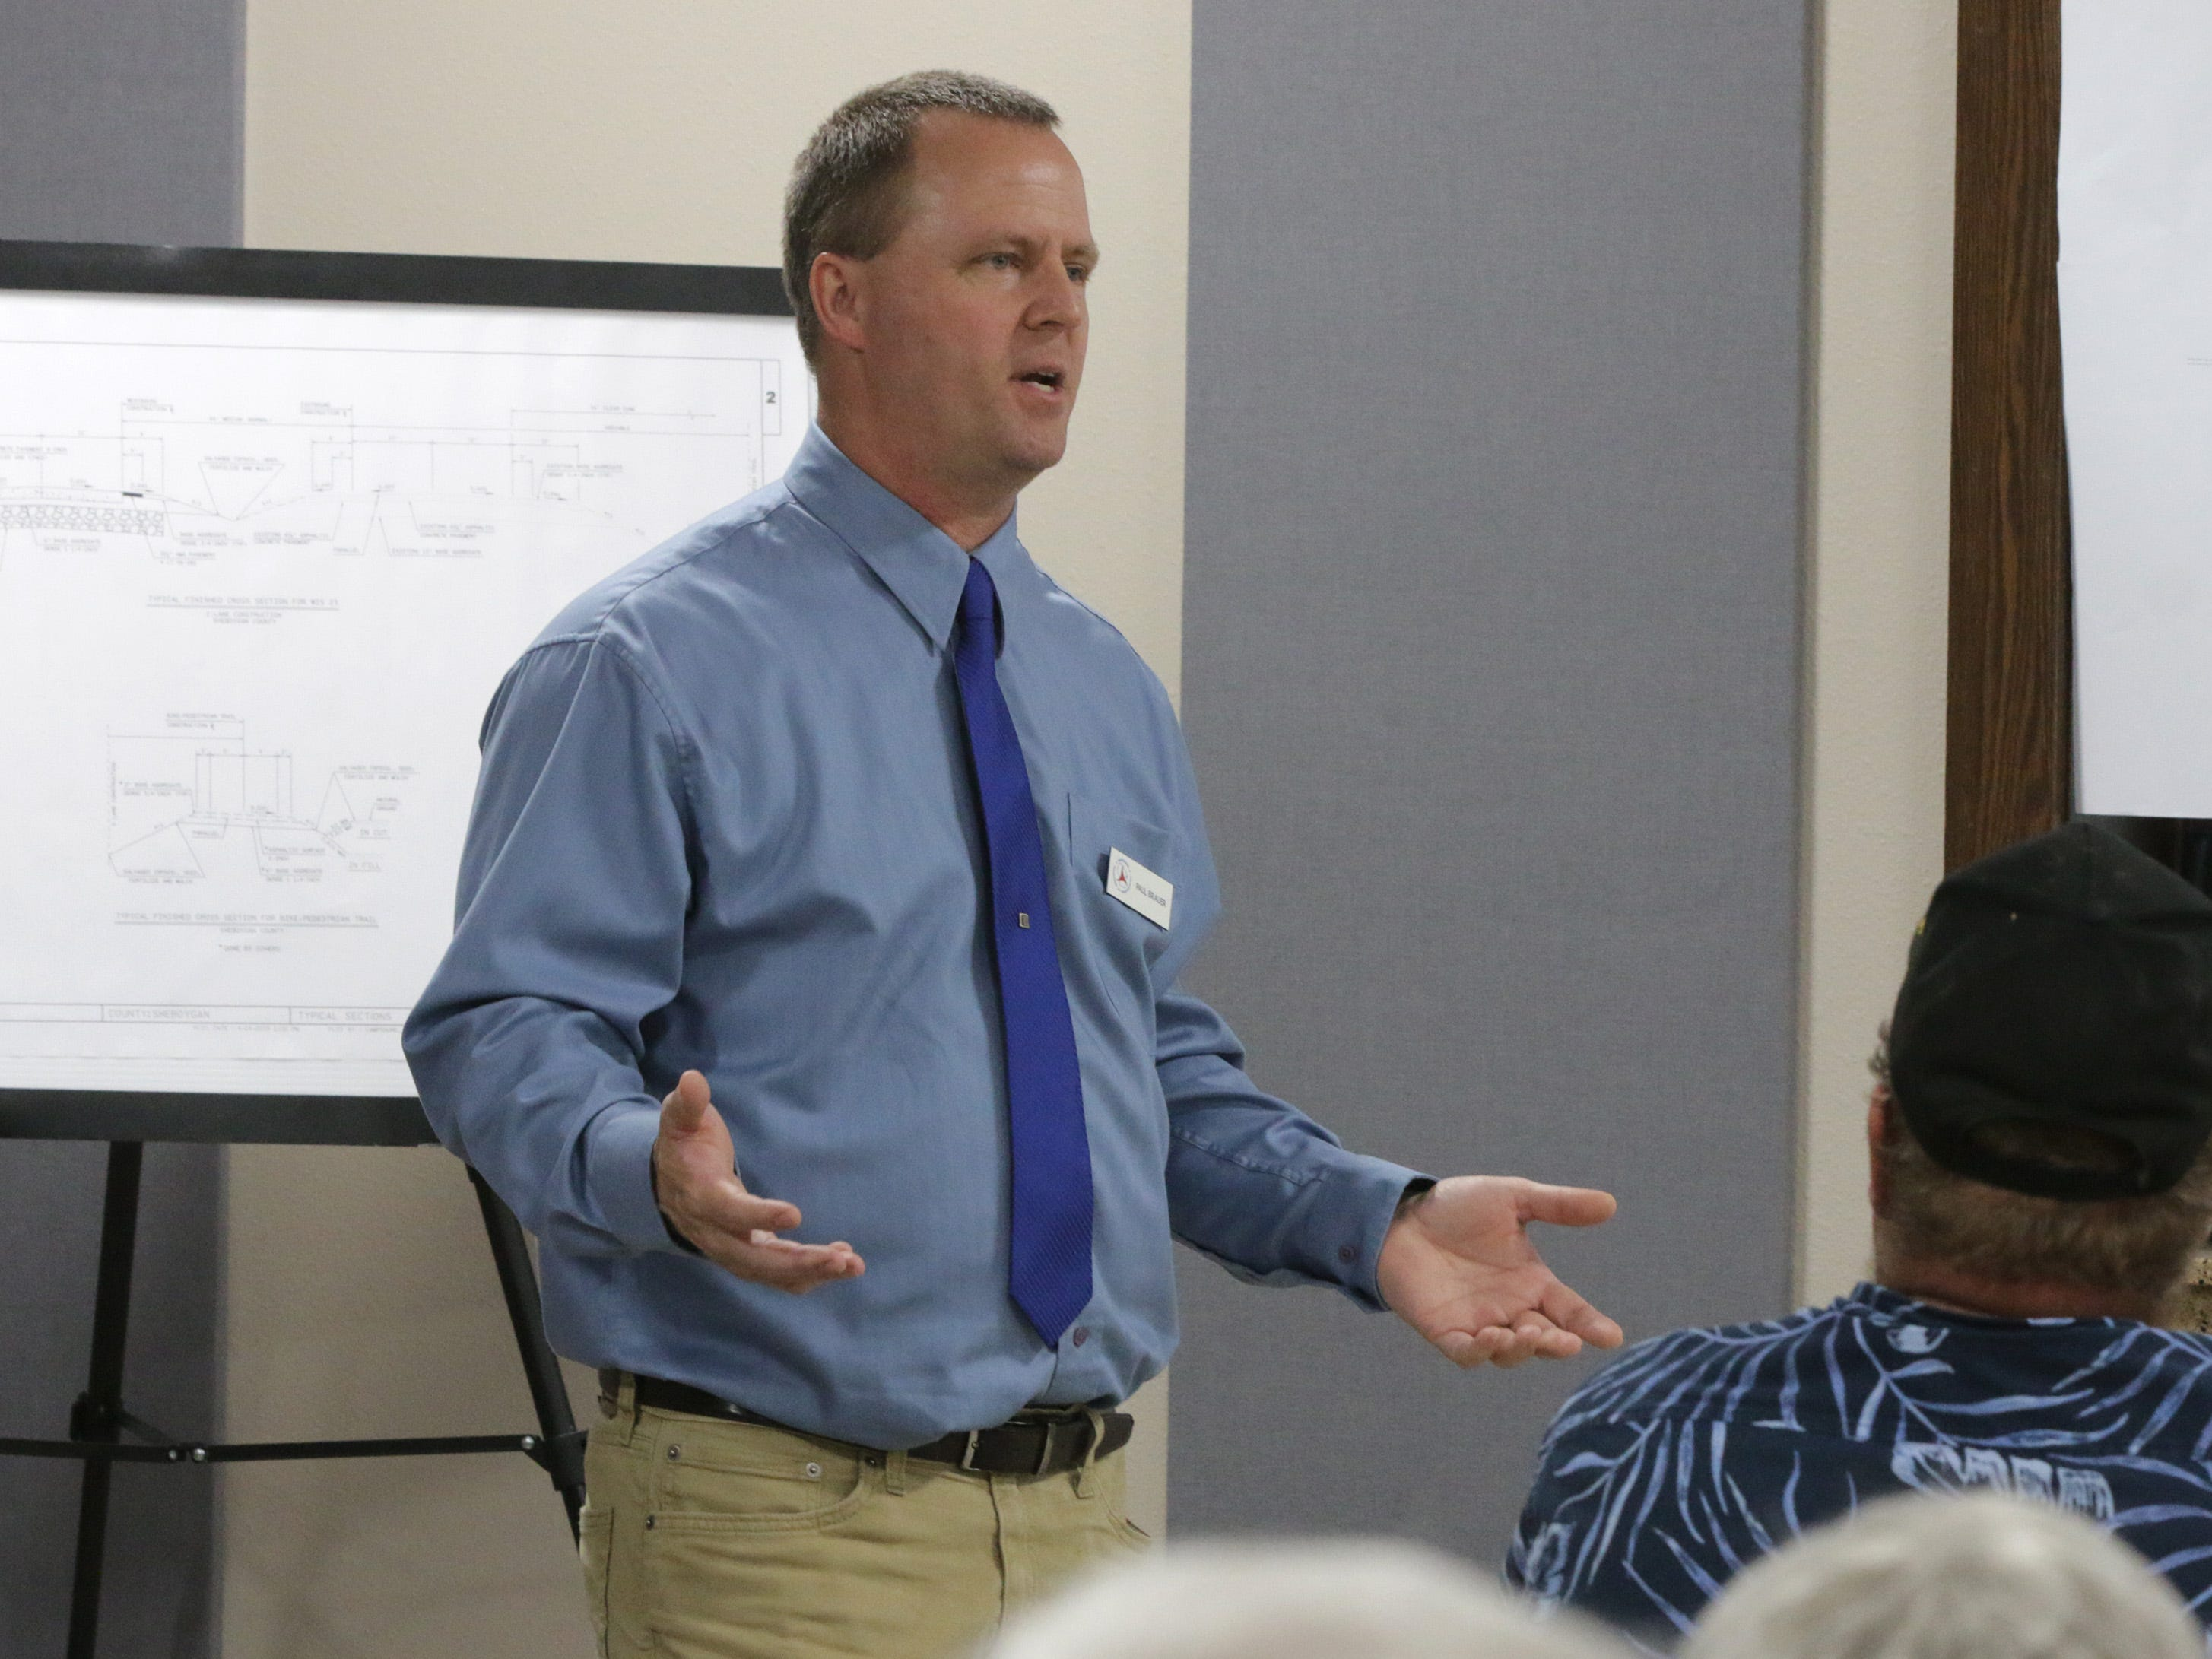 Department of Transportation's Paul Brauer answers questions from people impacted by the state Highway 23 four-lane construction project during a meeting at the Sheboygan County Transportation facility, Thursday, May 9, 2019, in Plymouth, Wis.